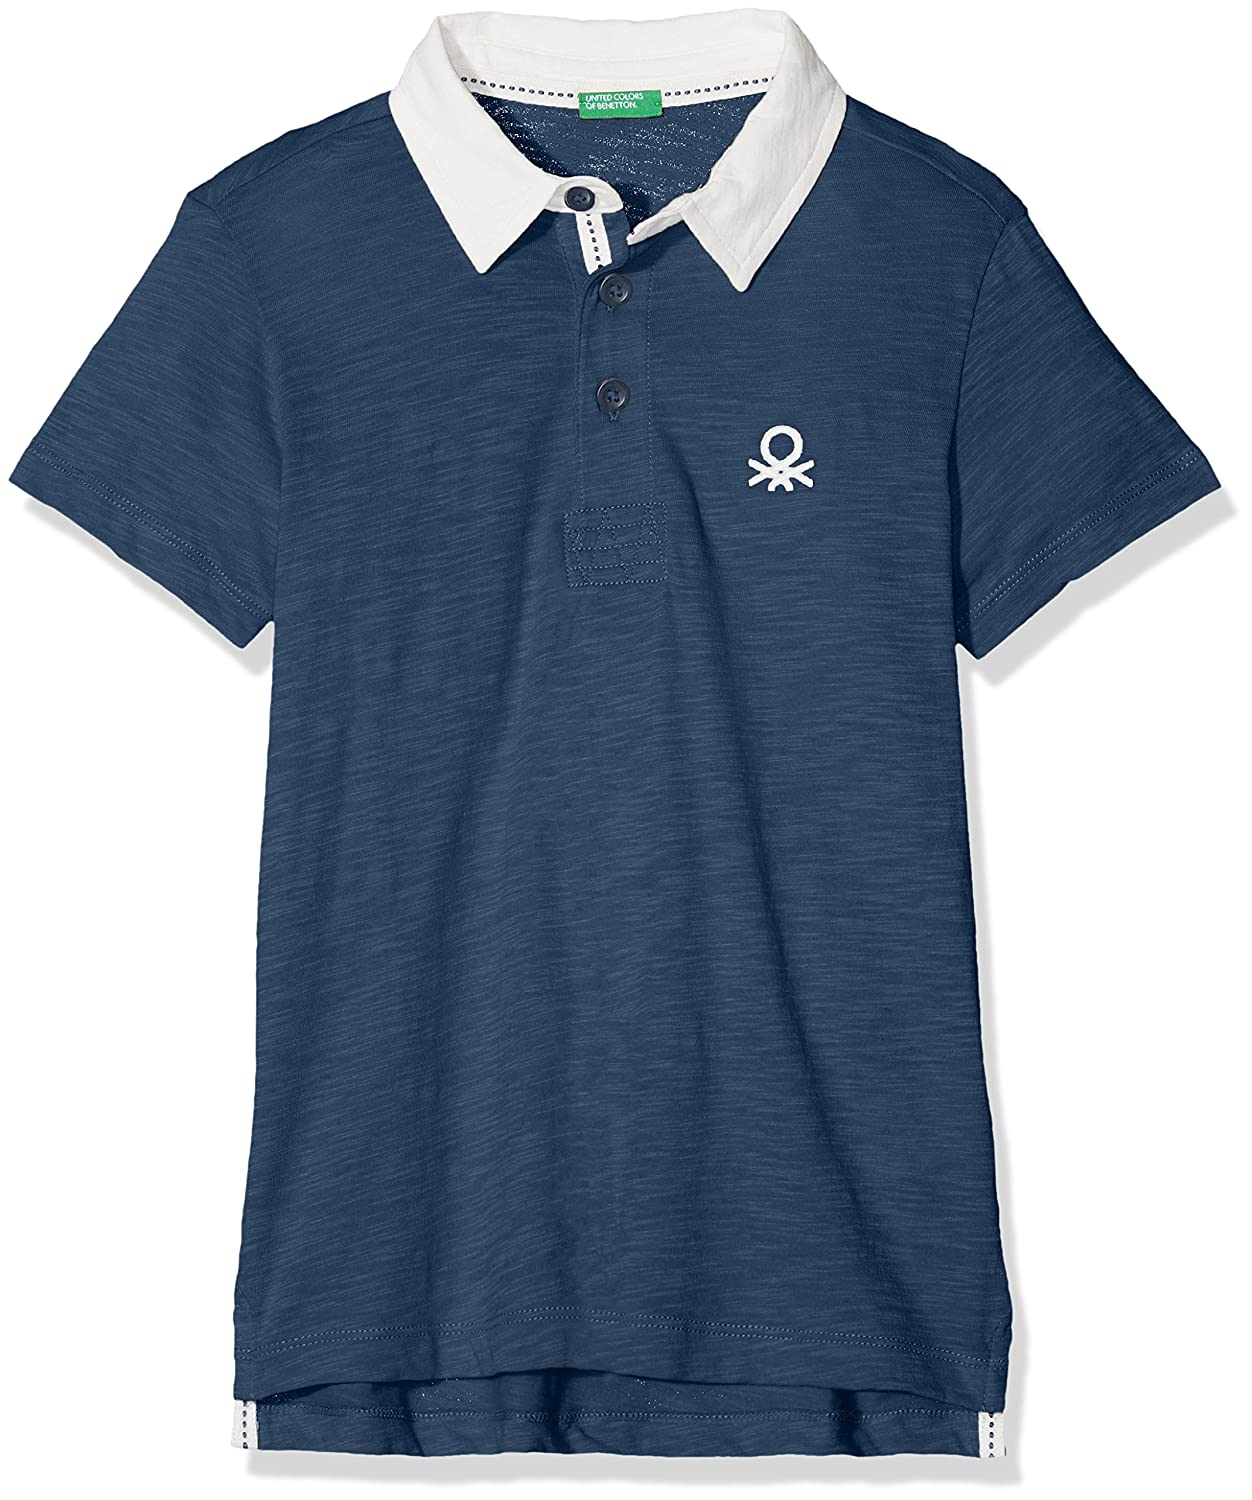 United Colors of Benetton H/S Polo Shirt, Bambino